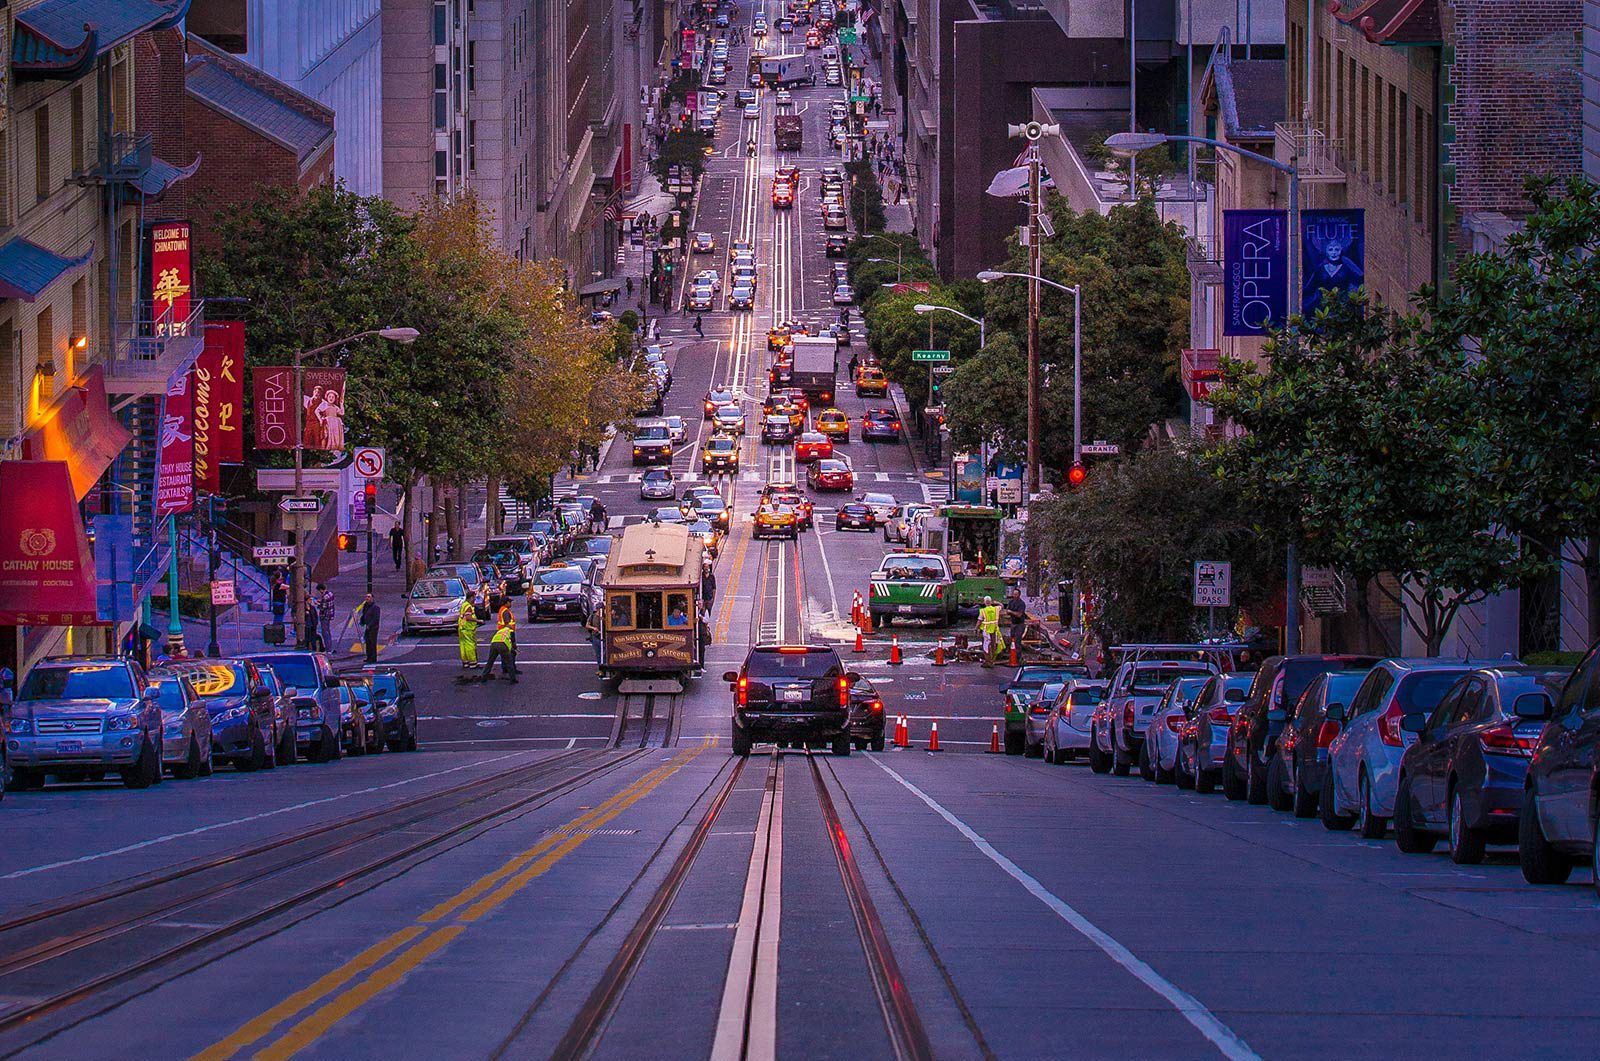 View looking down at large hill from centre of busy road with streetcar approaching.